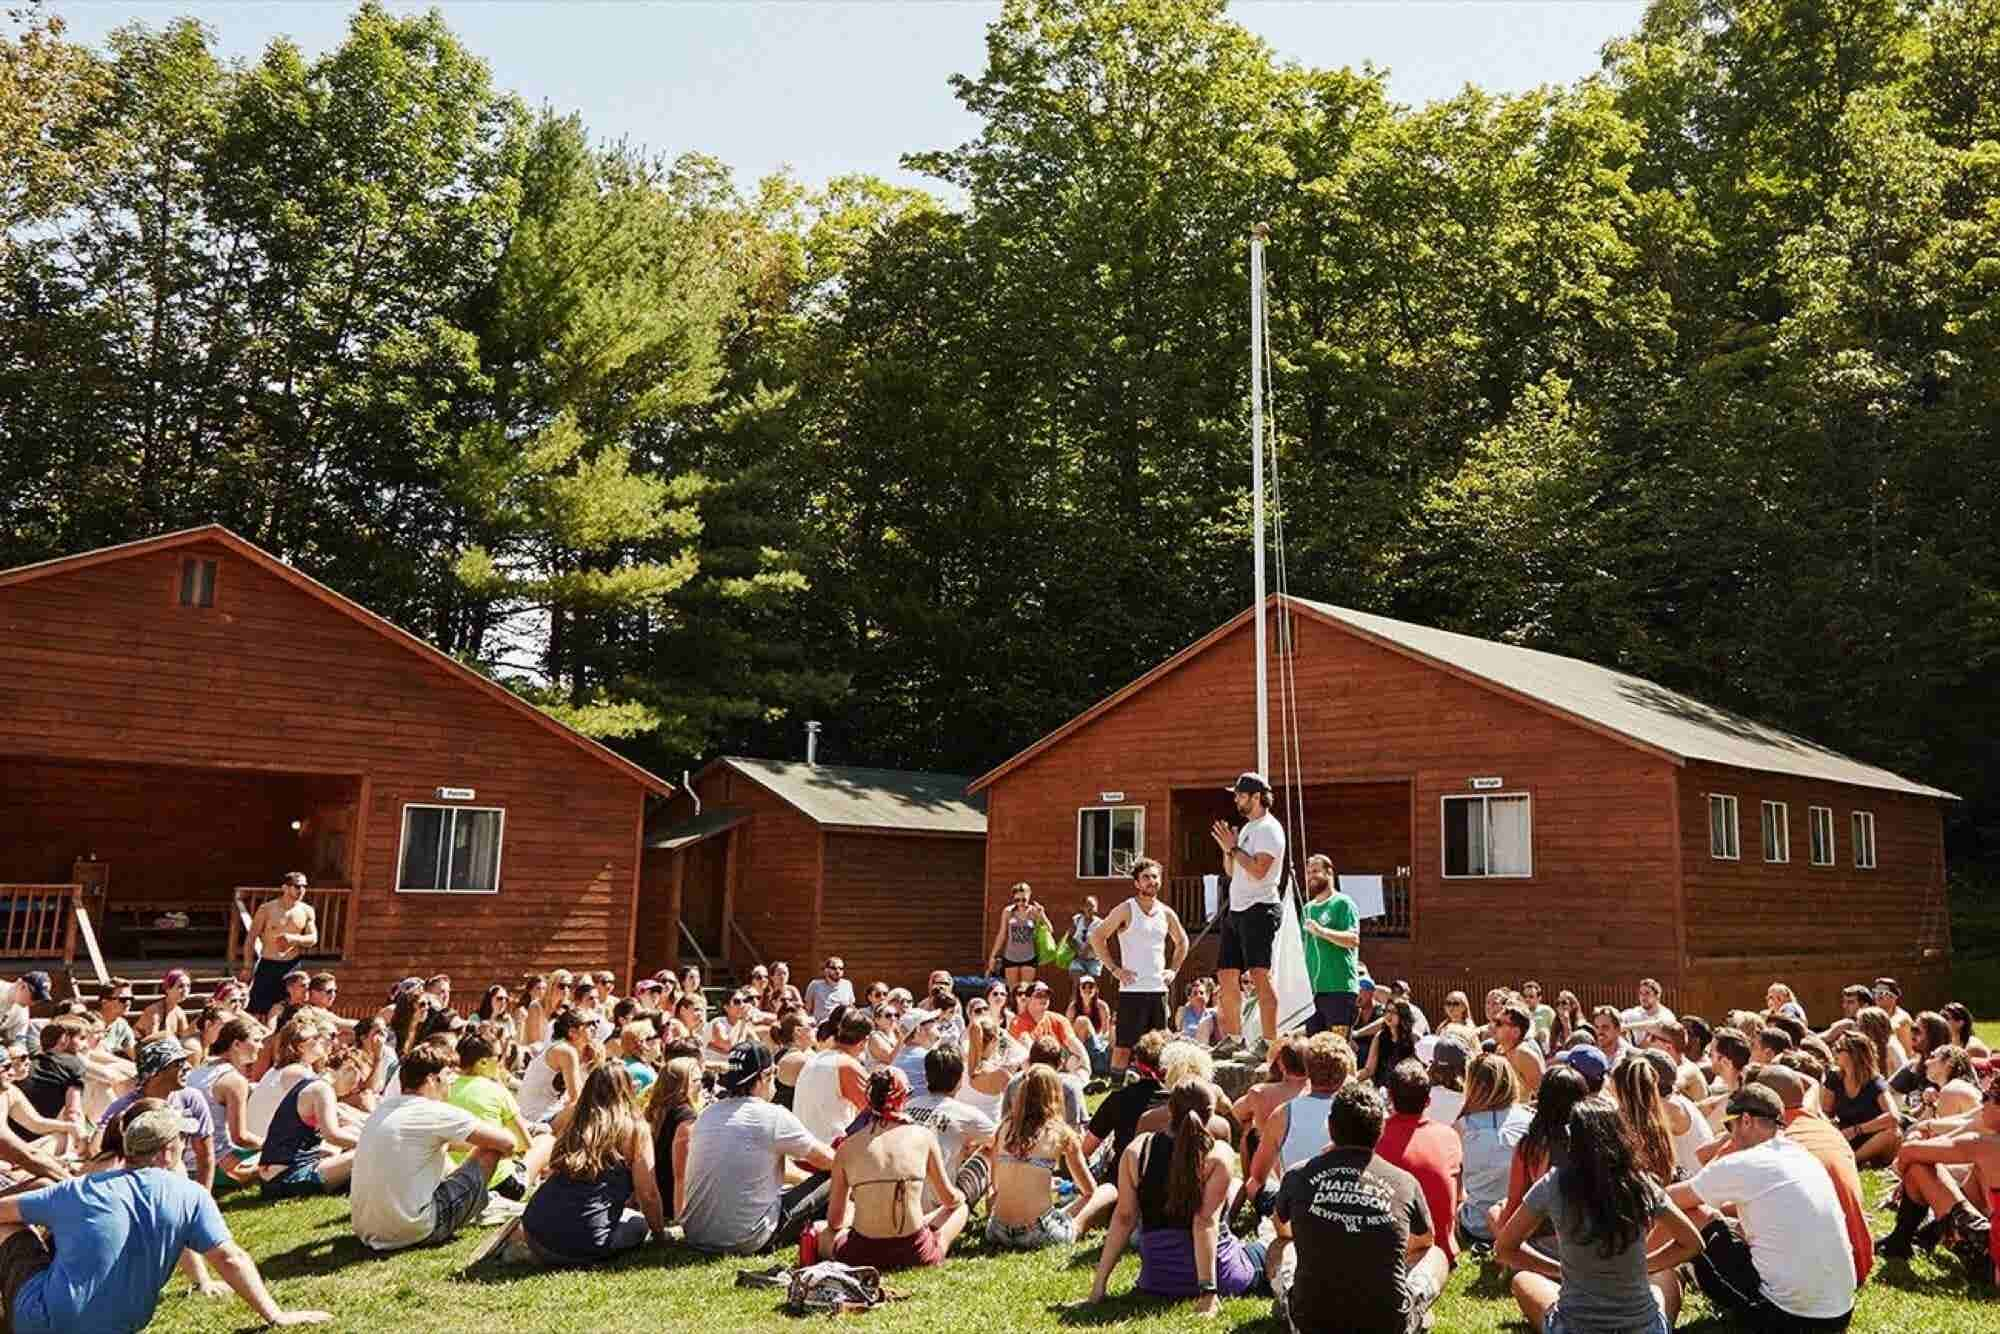 Podcast: How The Founder at This Sleepaway Camp for Grownups Scaled Hi...